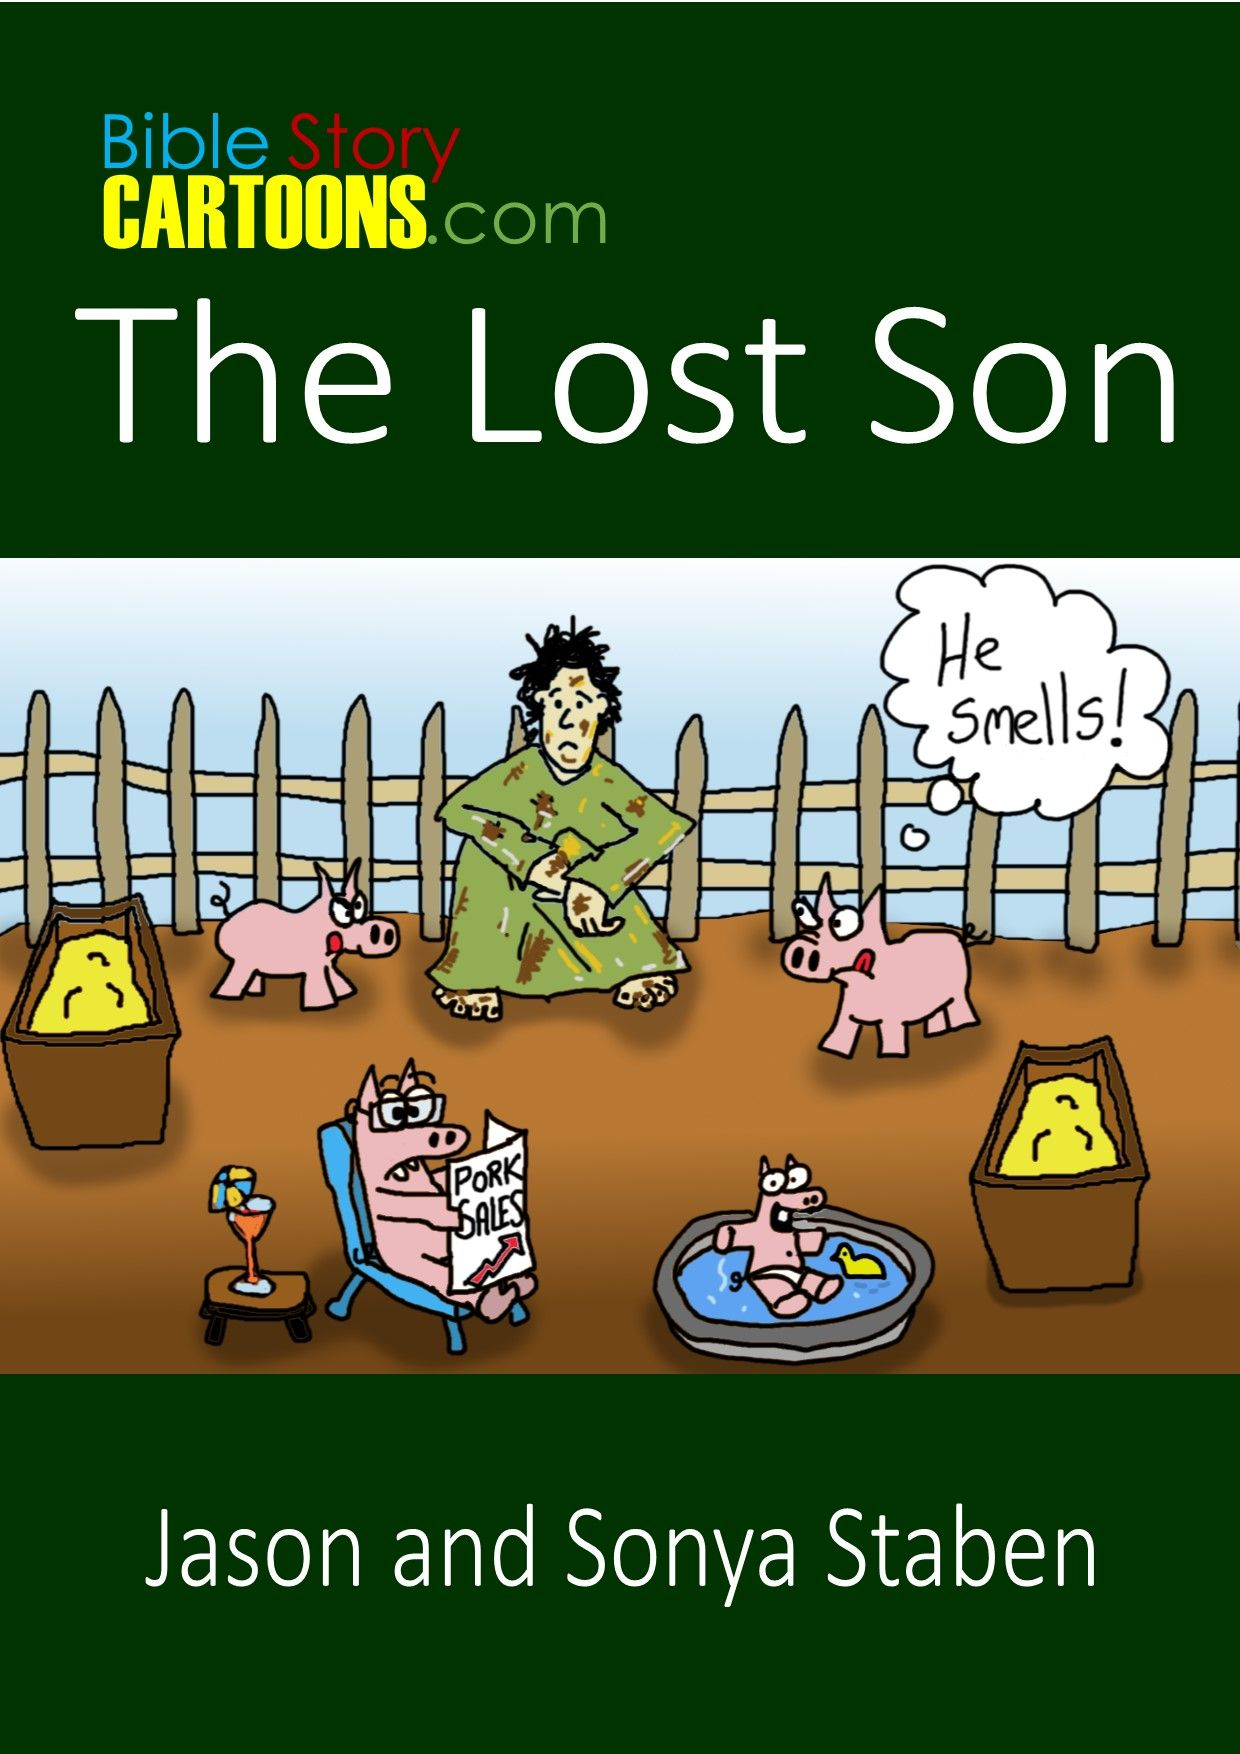 The Lost Son Story Luke 15 11 32 With Images